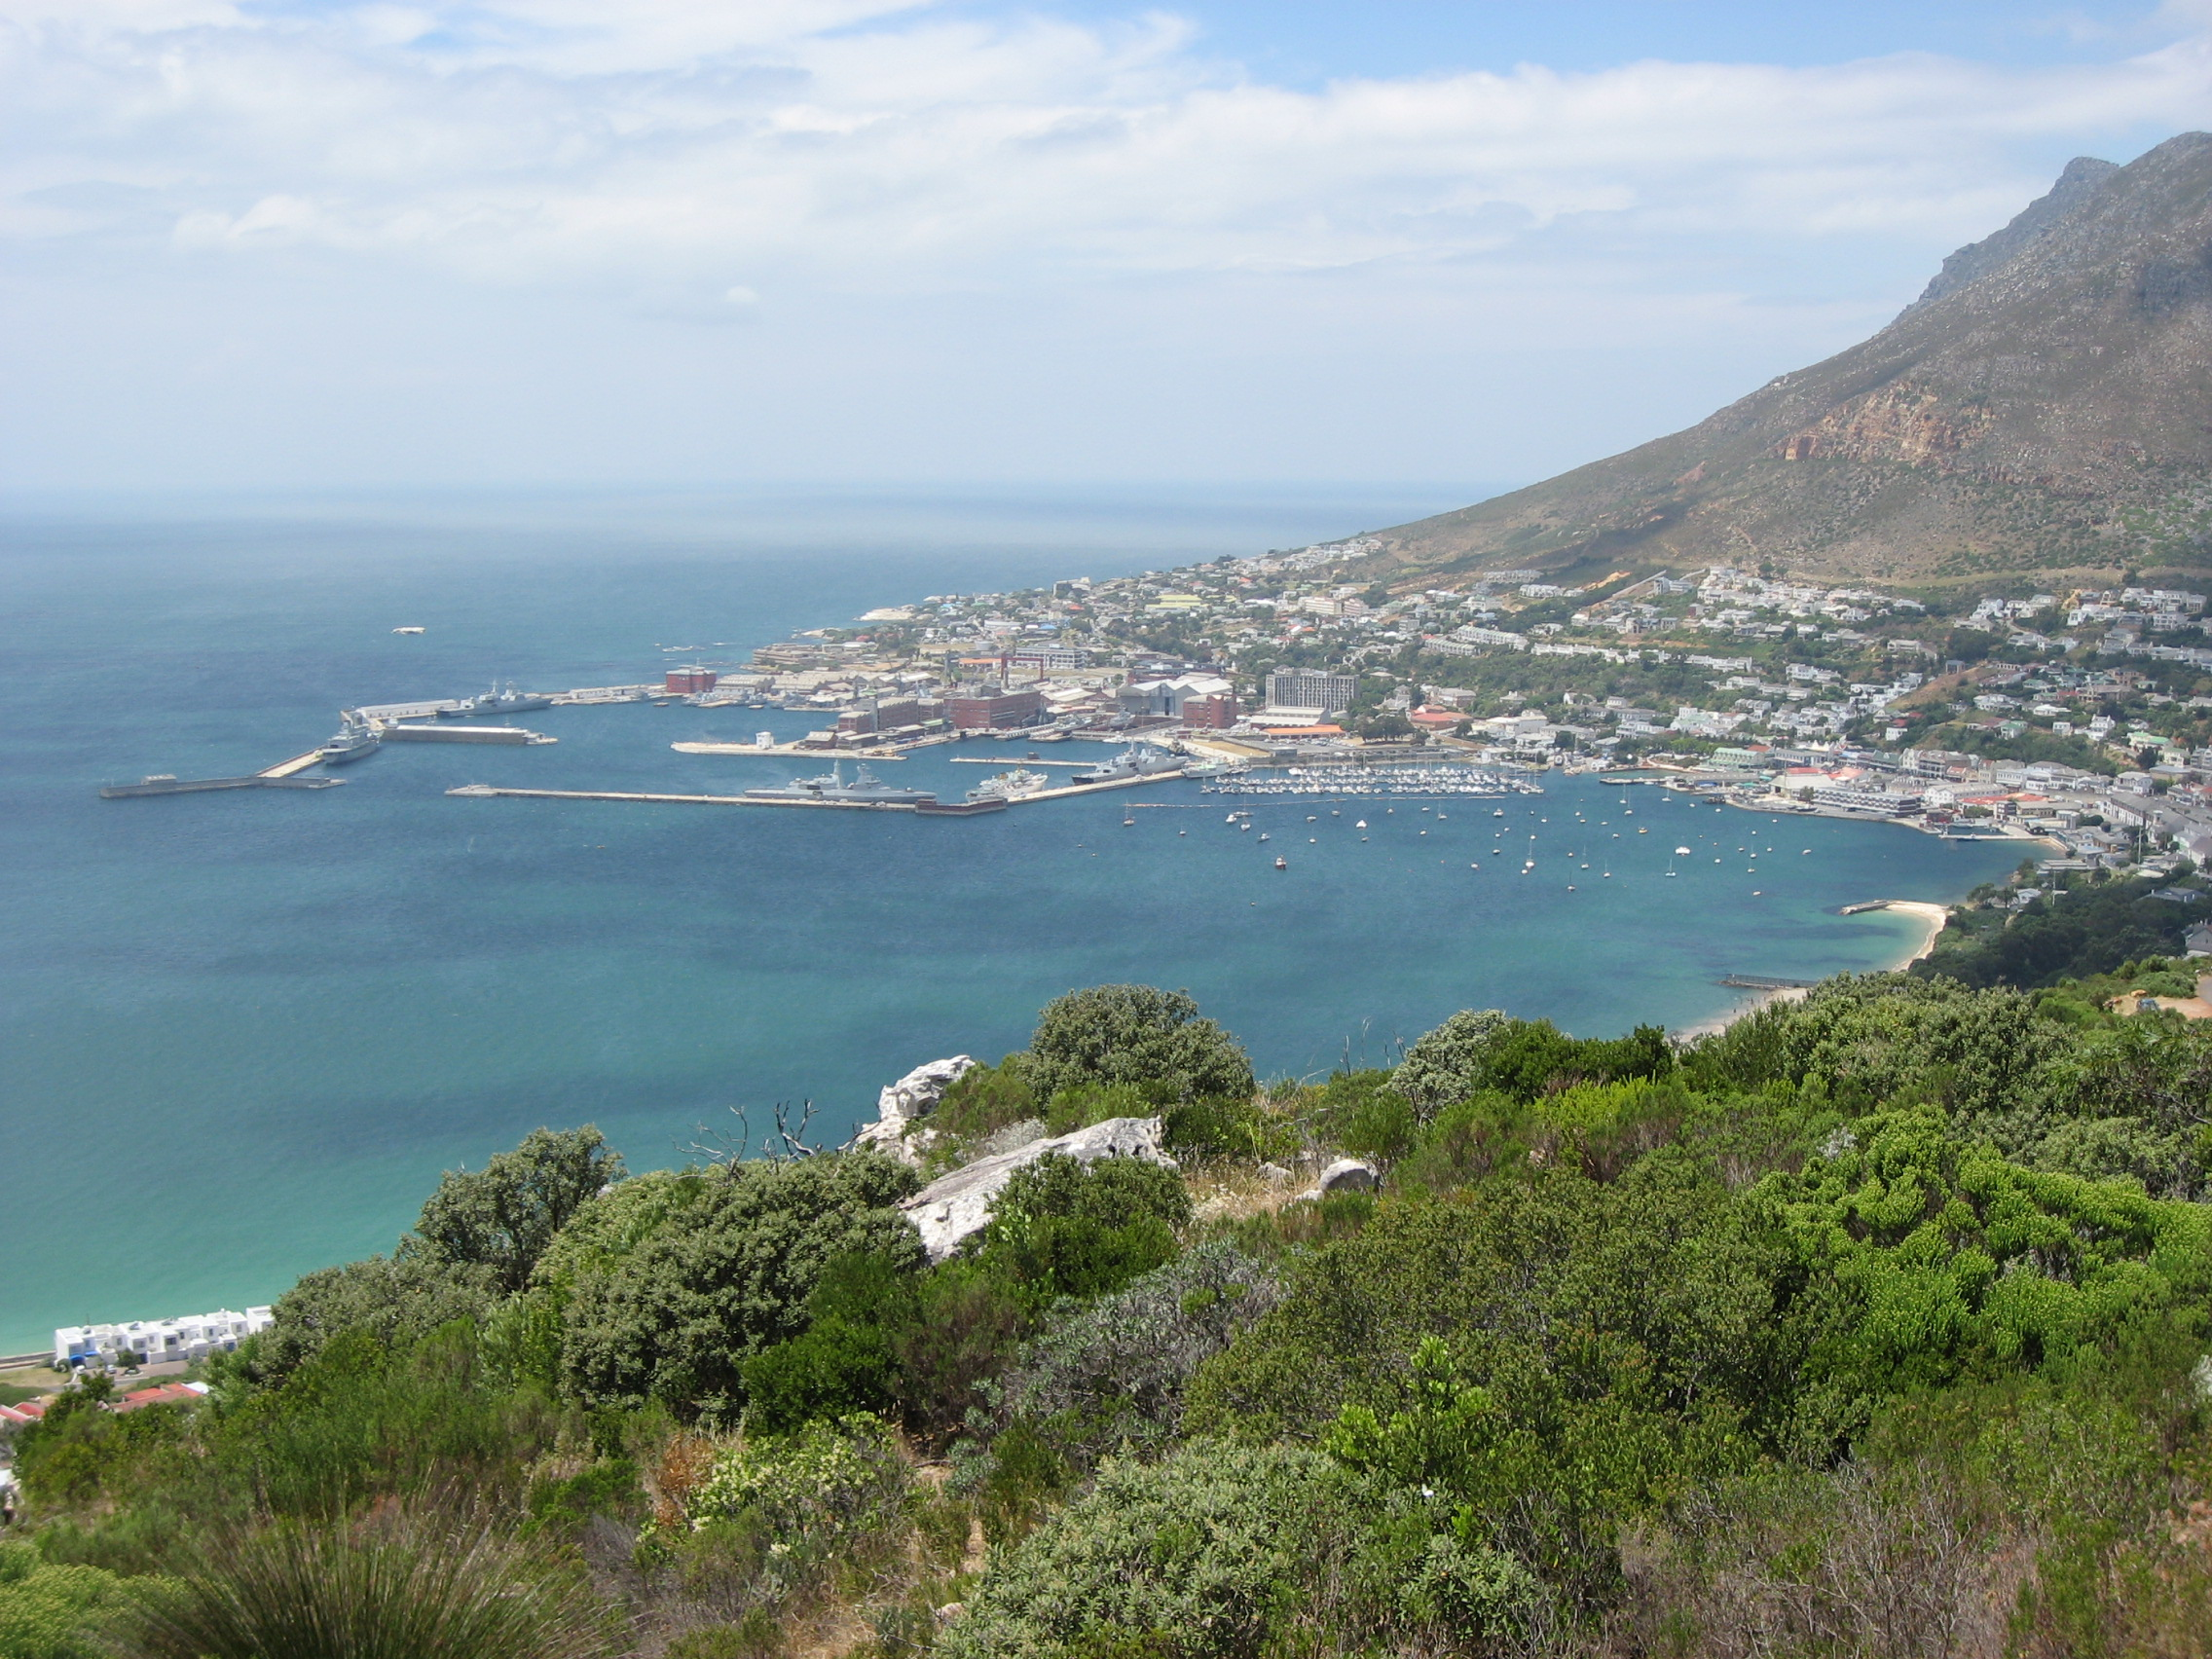 Hoerikwaggo hike… Jenman Safaris on Day 2 of the Hoerikwaggo Hike! Constantia Nek to the Silvermine Dam… 7